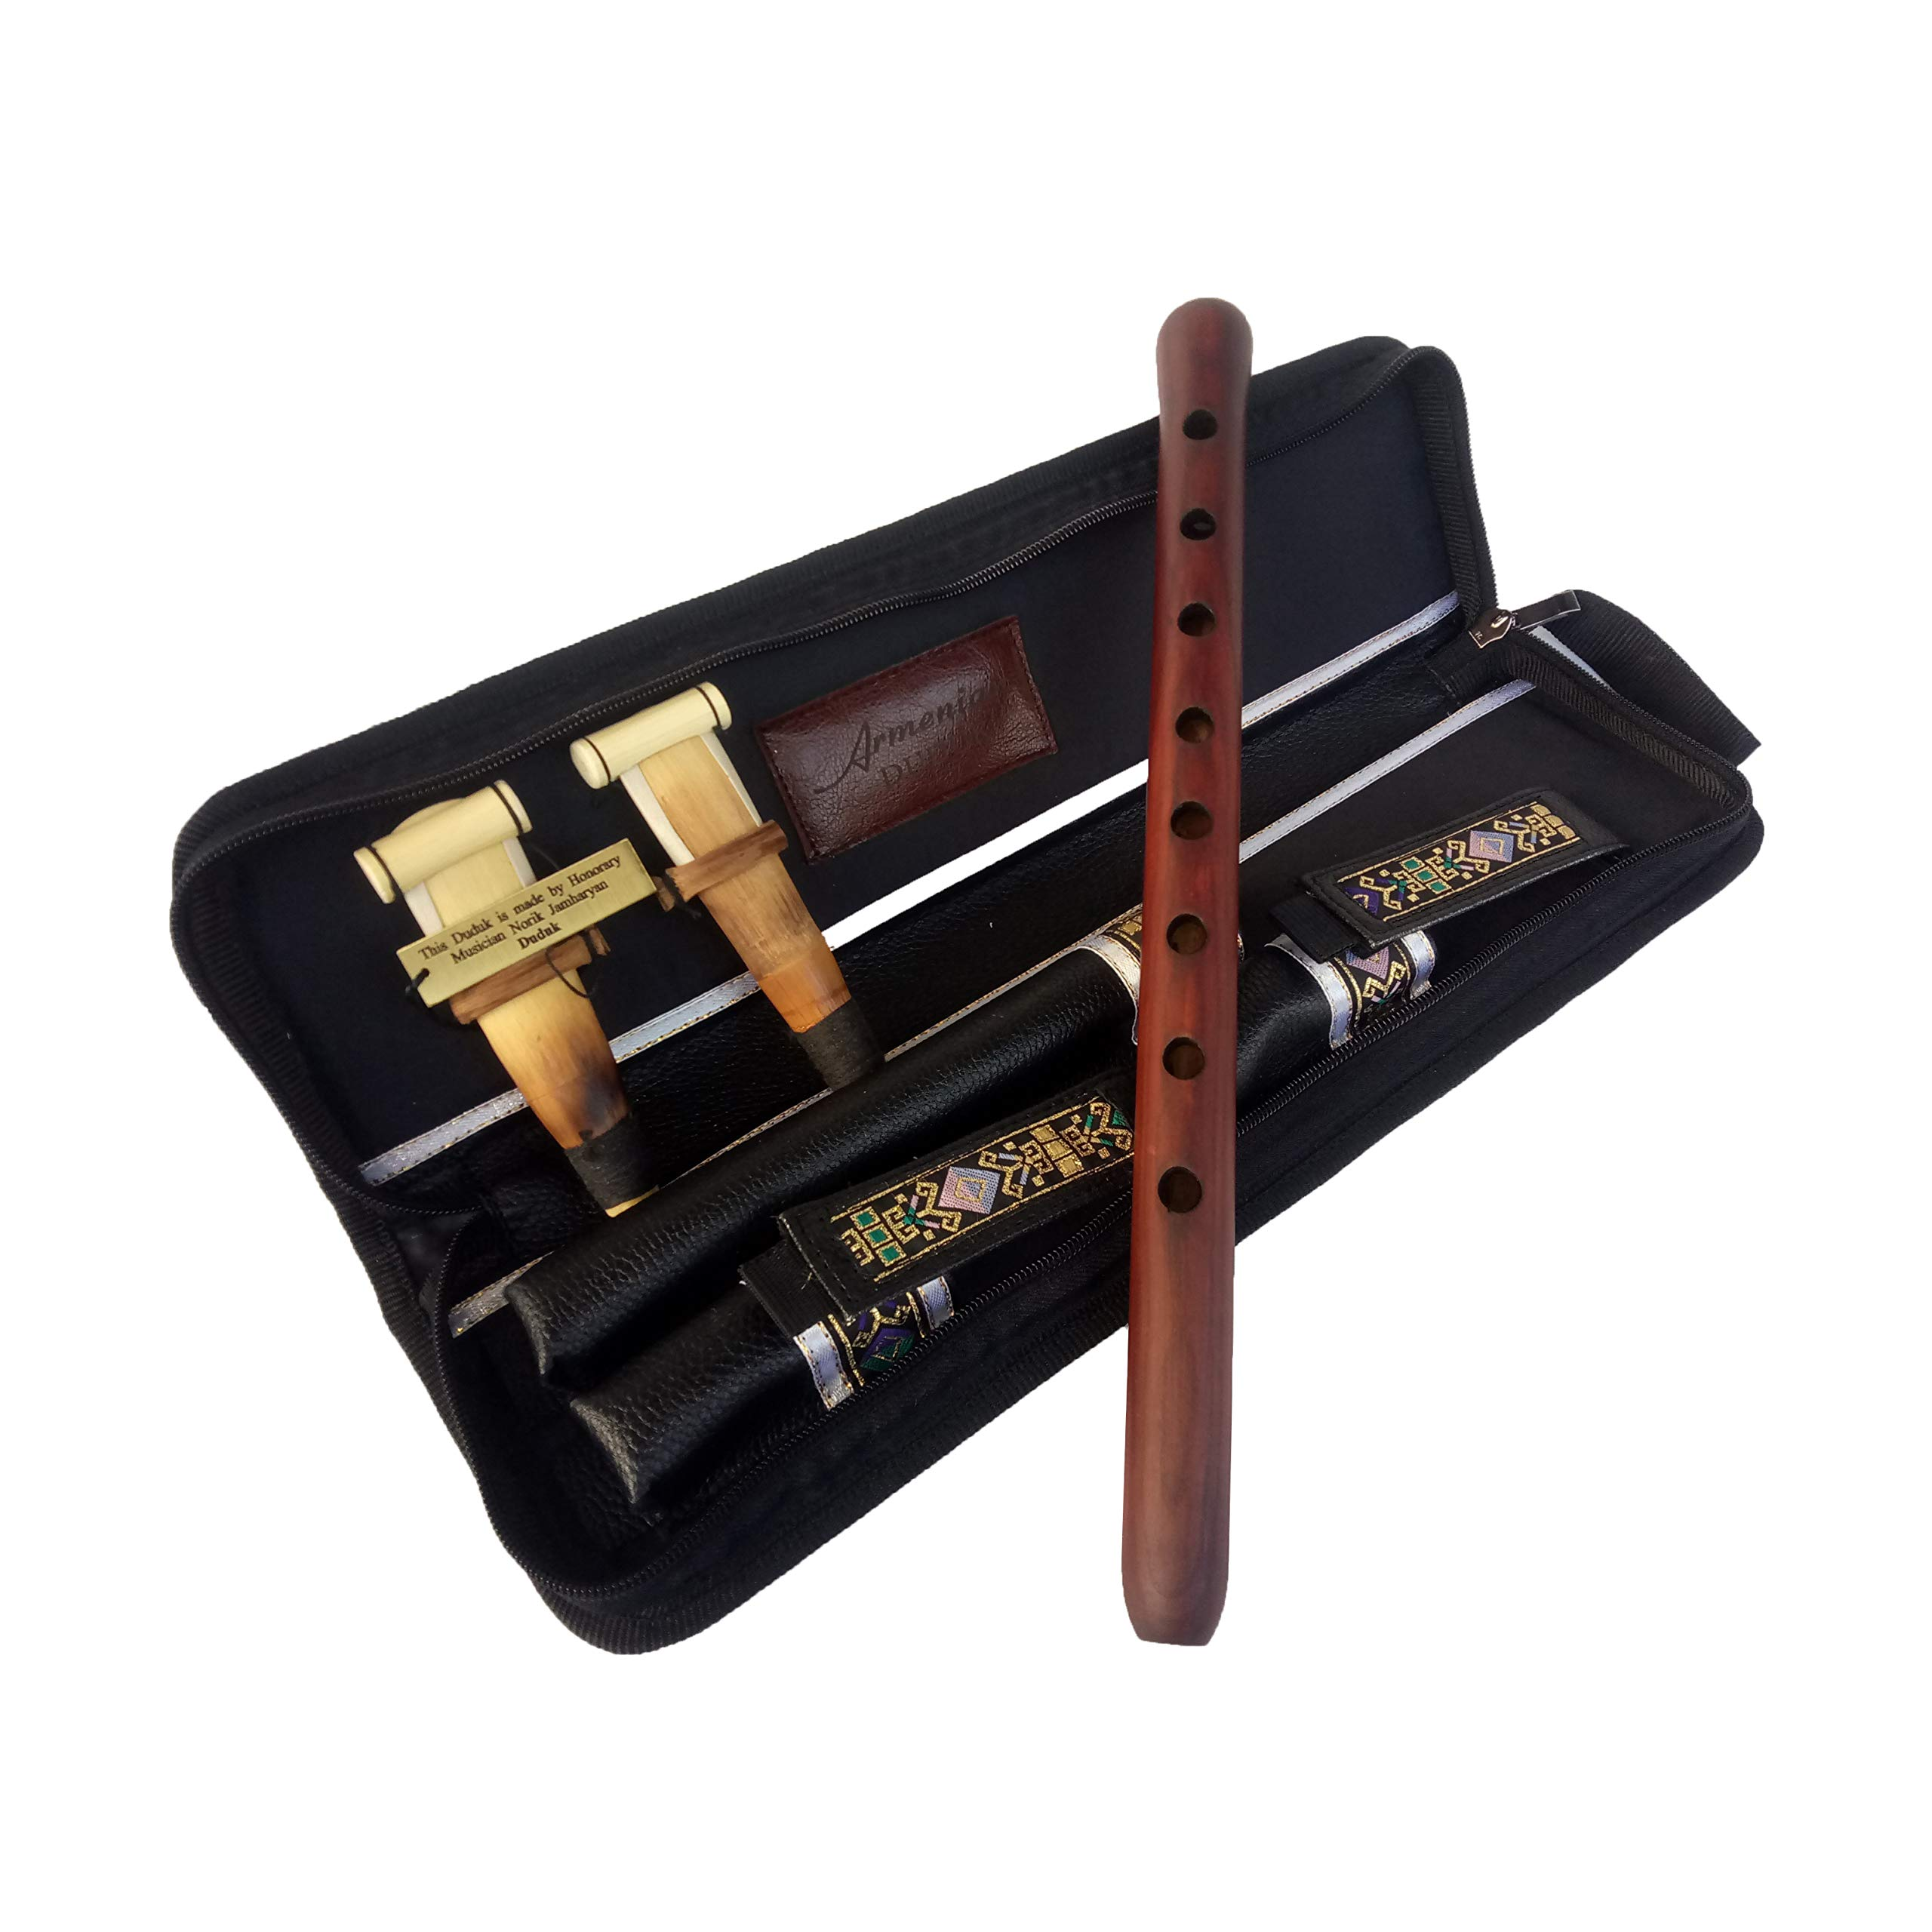 SALE - Professional Armenian DUDUK instrument Handmade From ARMENIA, leather case, 2 Pro reeds, Playing Instruction - Apricot Wood in Key A - Flute Oboe Balaban Woodwind by HandCraftoria